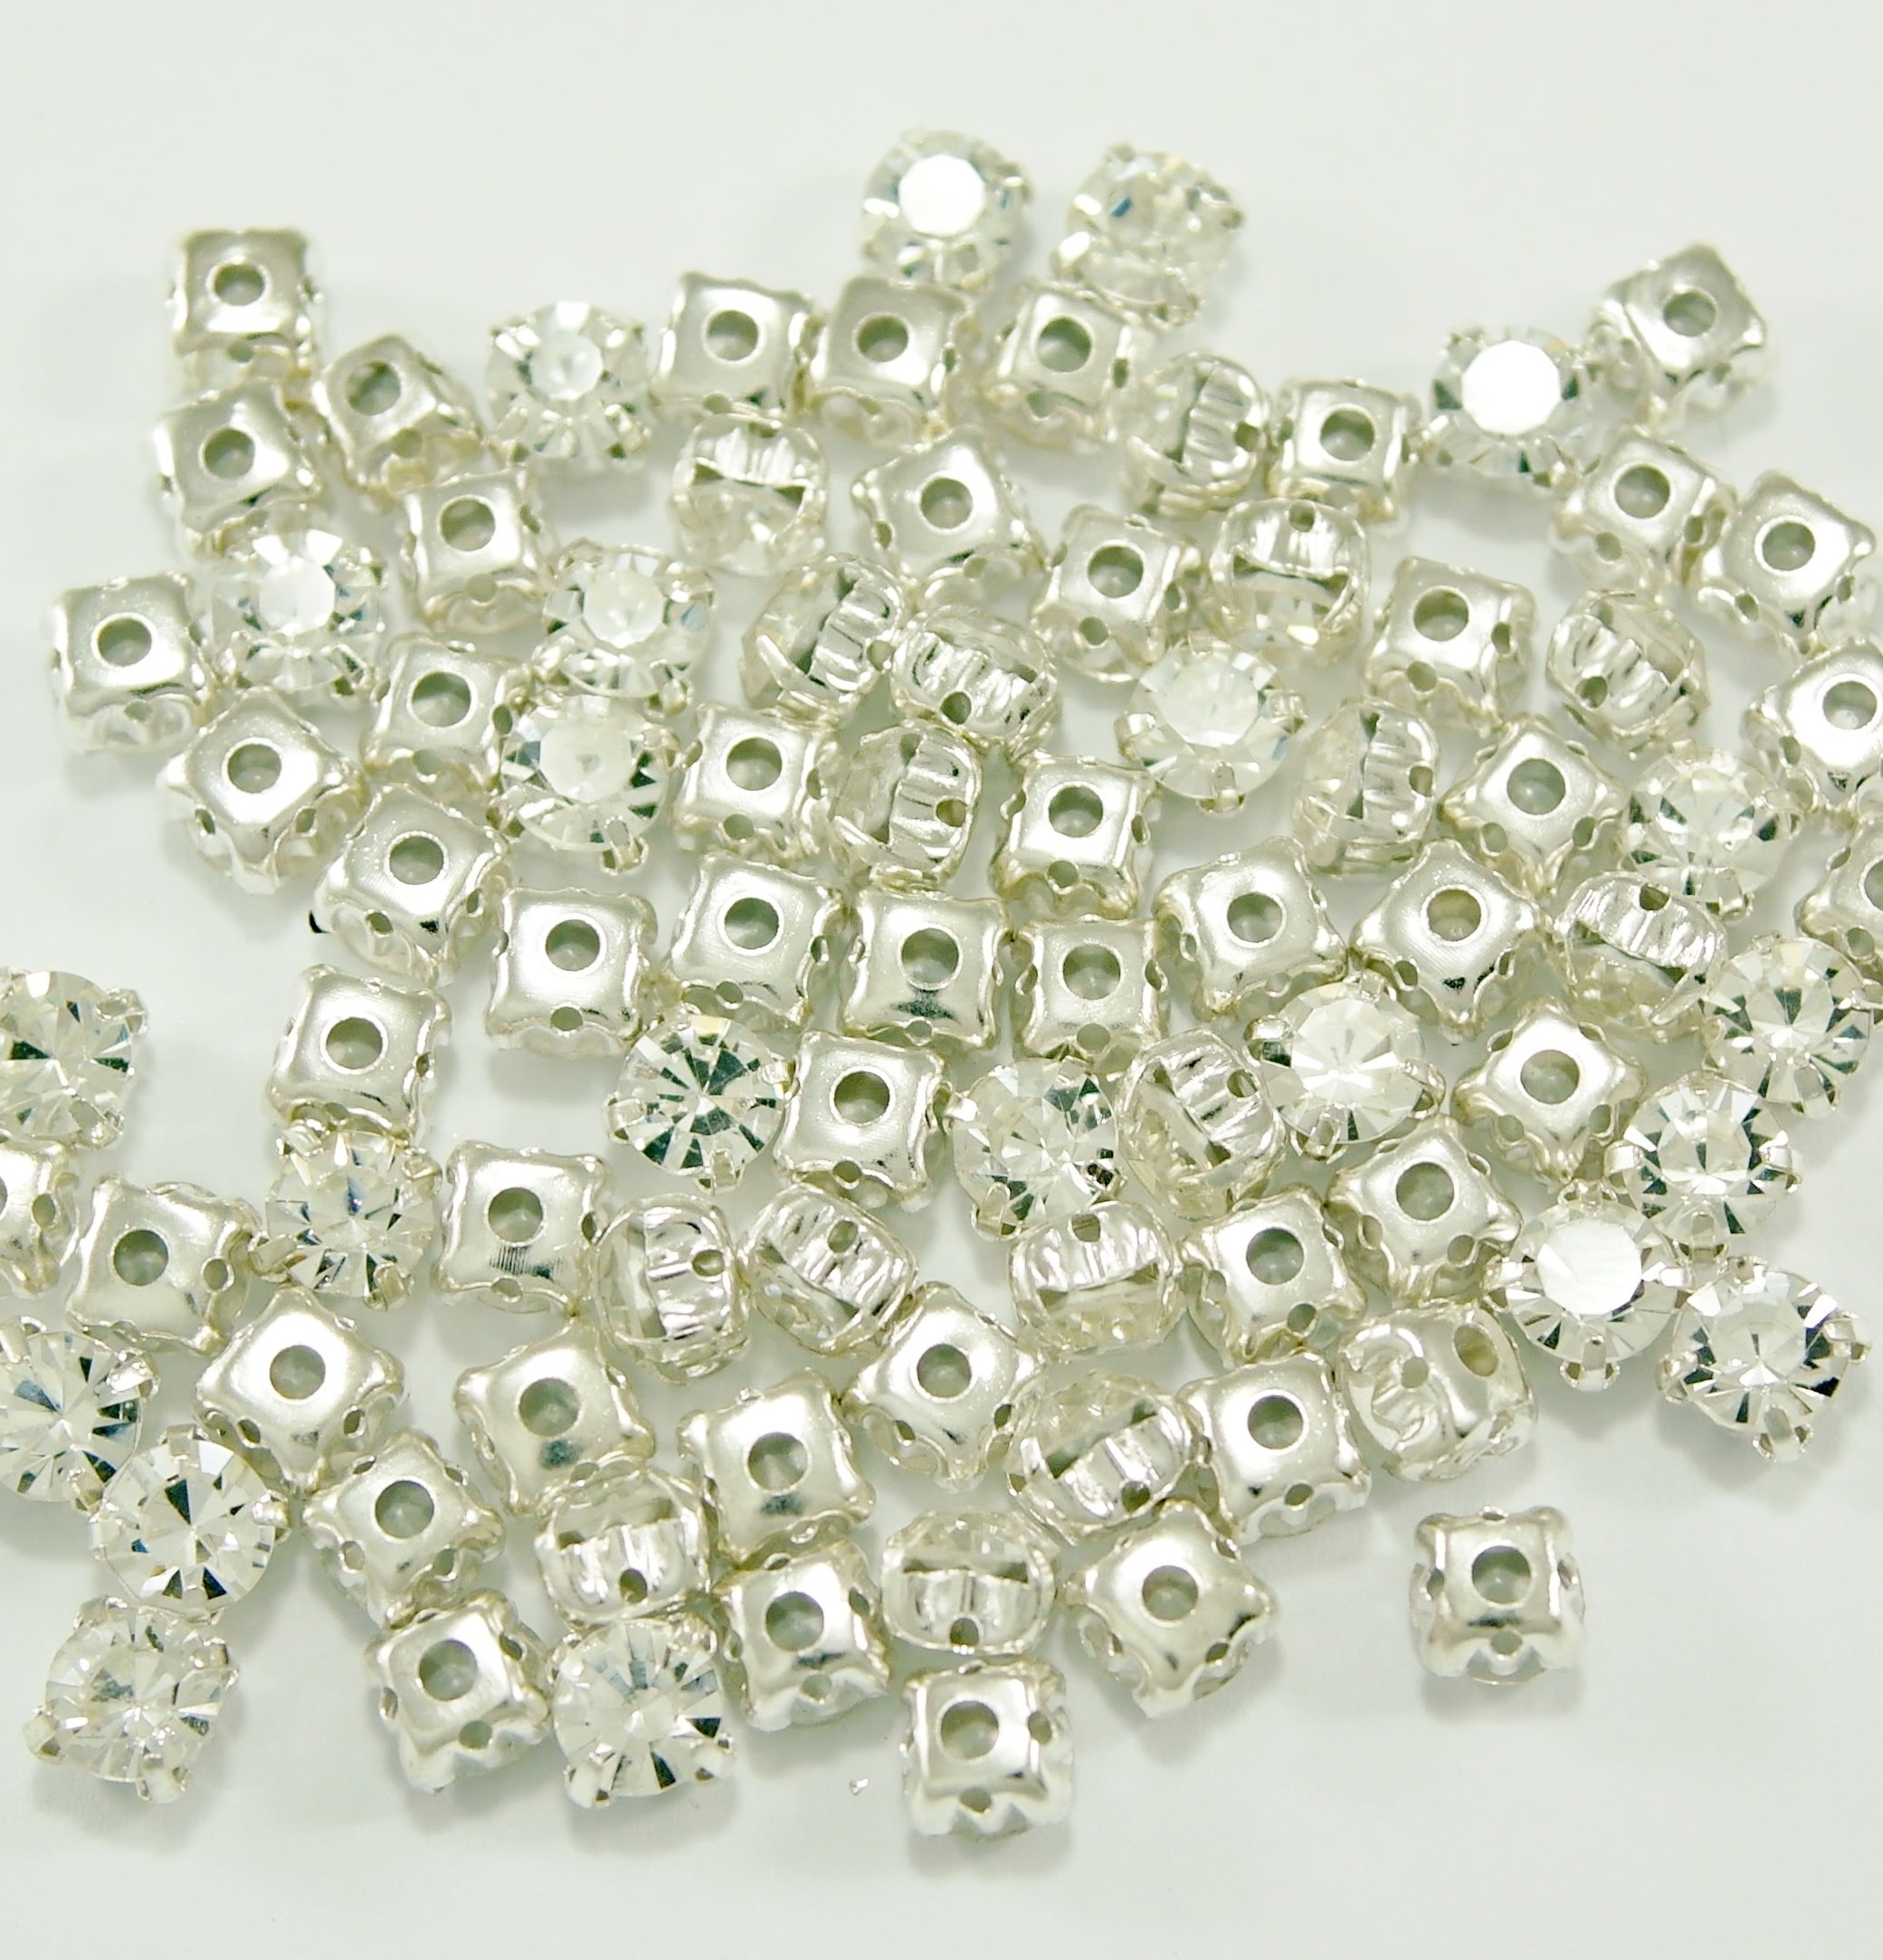 SS21 montees - Crystal B1 ( 300 pcs )